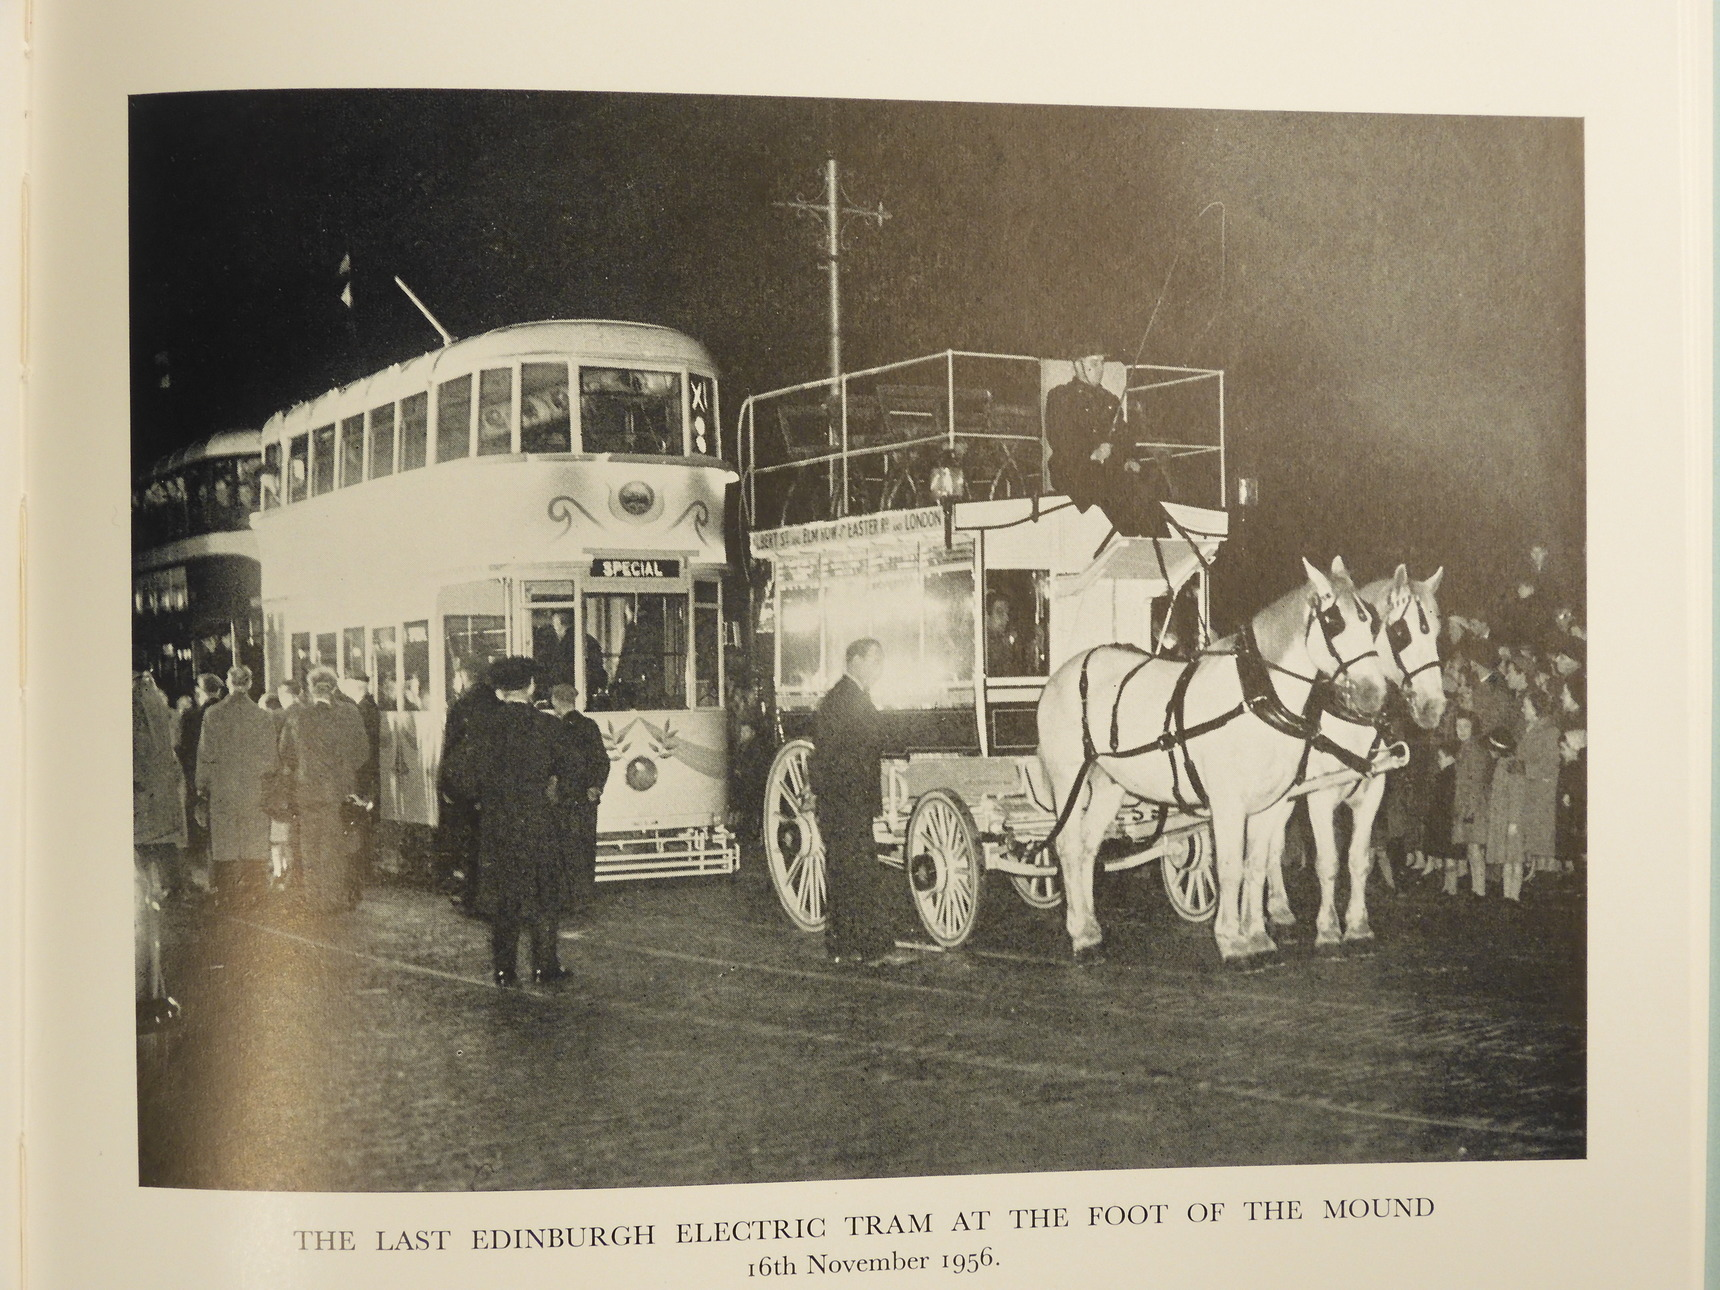 St Cuthbert's horses & the last Electric Tram